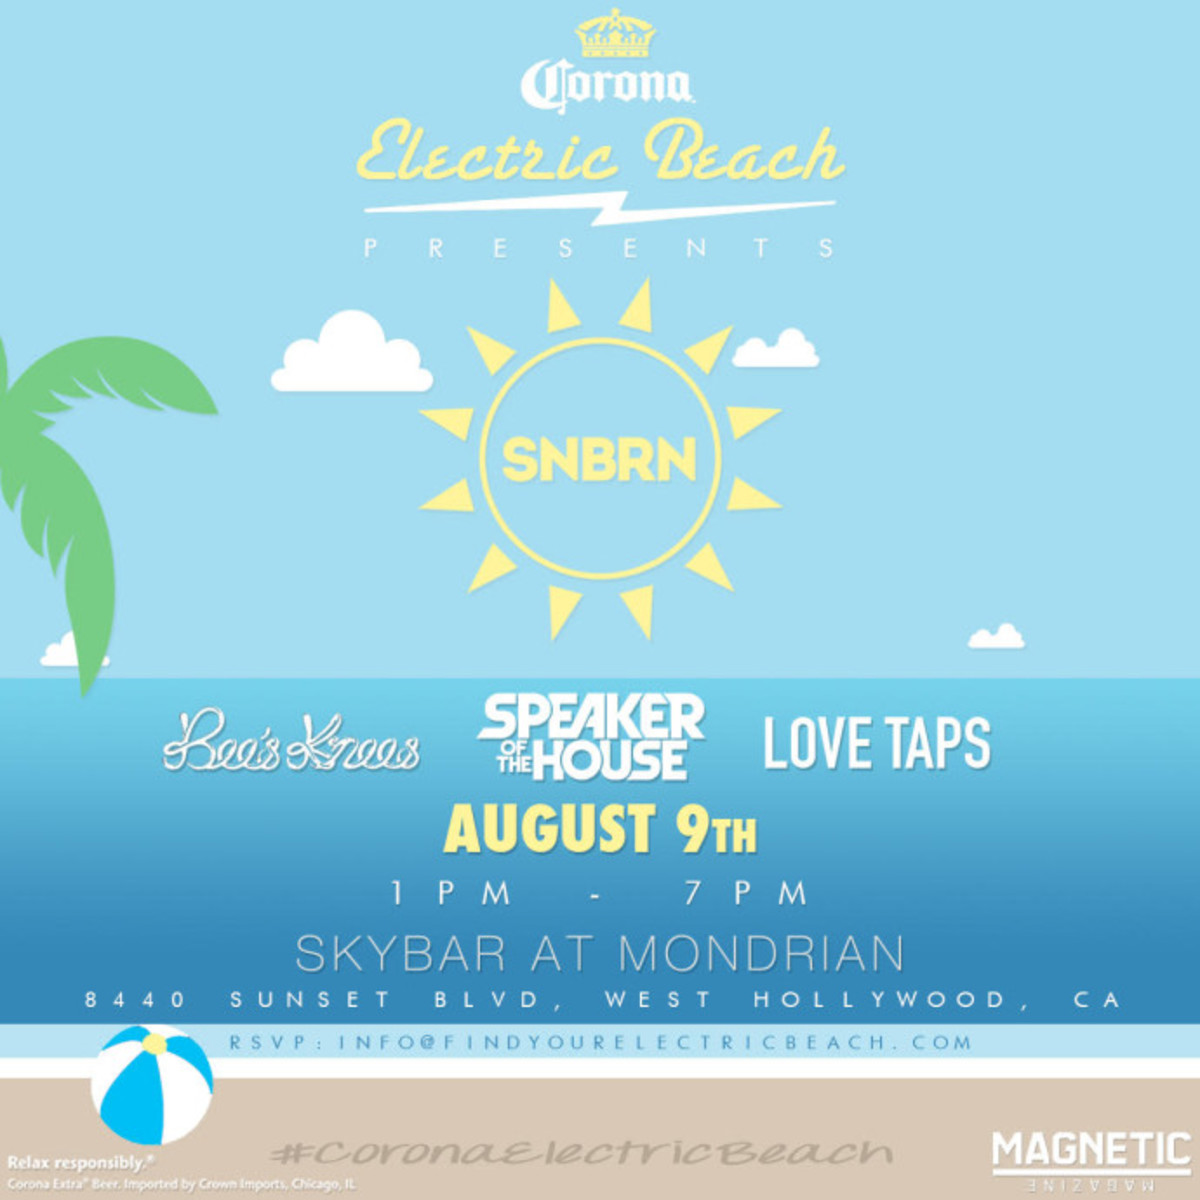 Come Join Us At Corona's Electric Beach With SNBRN At The Mondrian 8/9/15 - RSVP Here